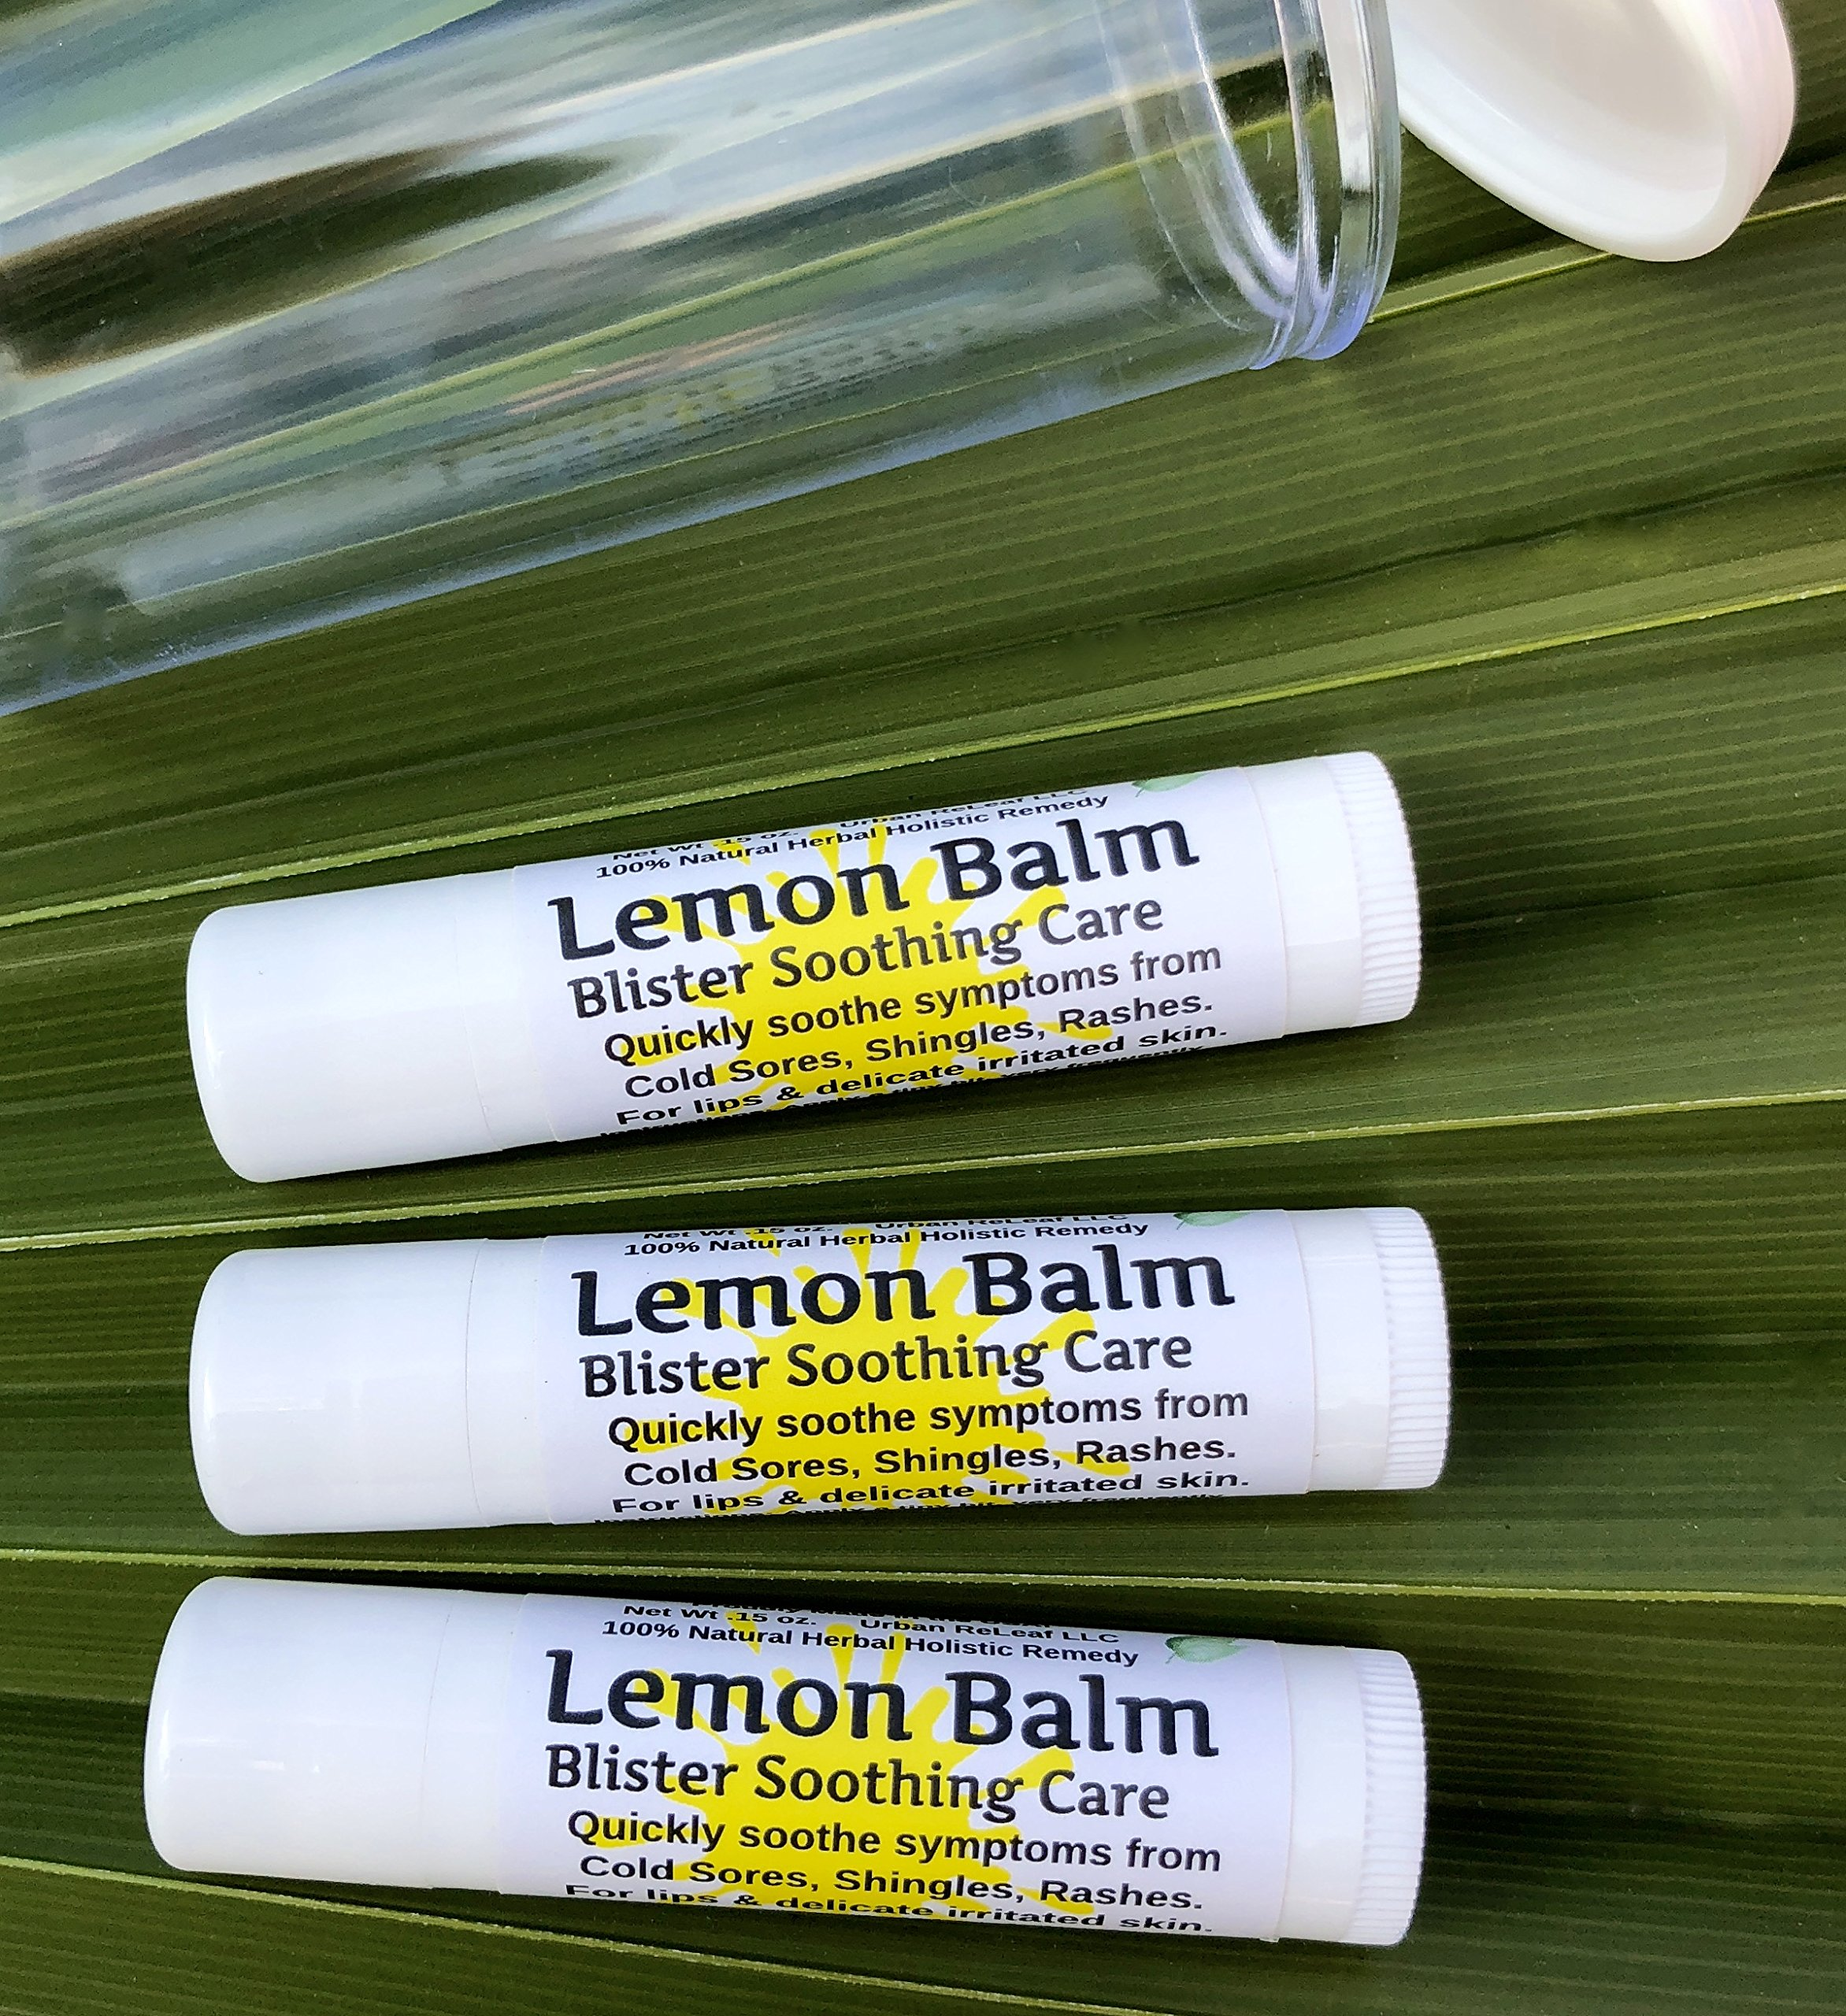 Lemon Balm Blister Soothing Care Stick! Quickly Soothe Cold Sores, Shingles, Chicken Pox, Rashes, Herpes, Molluscum, Bug Bites. Suppress Future outbreaks. 100% Natural.''Goodbye, Itchy red Bumps!'' (3)